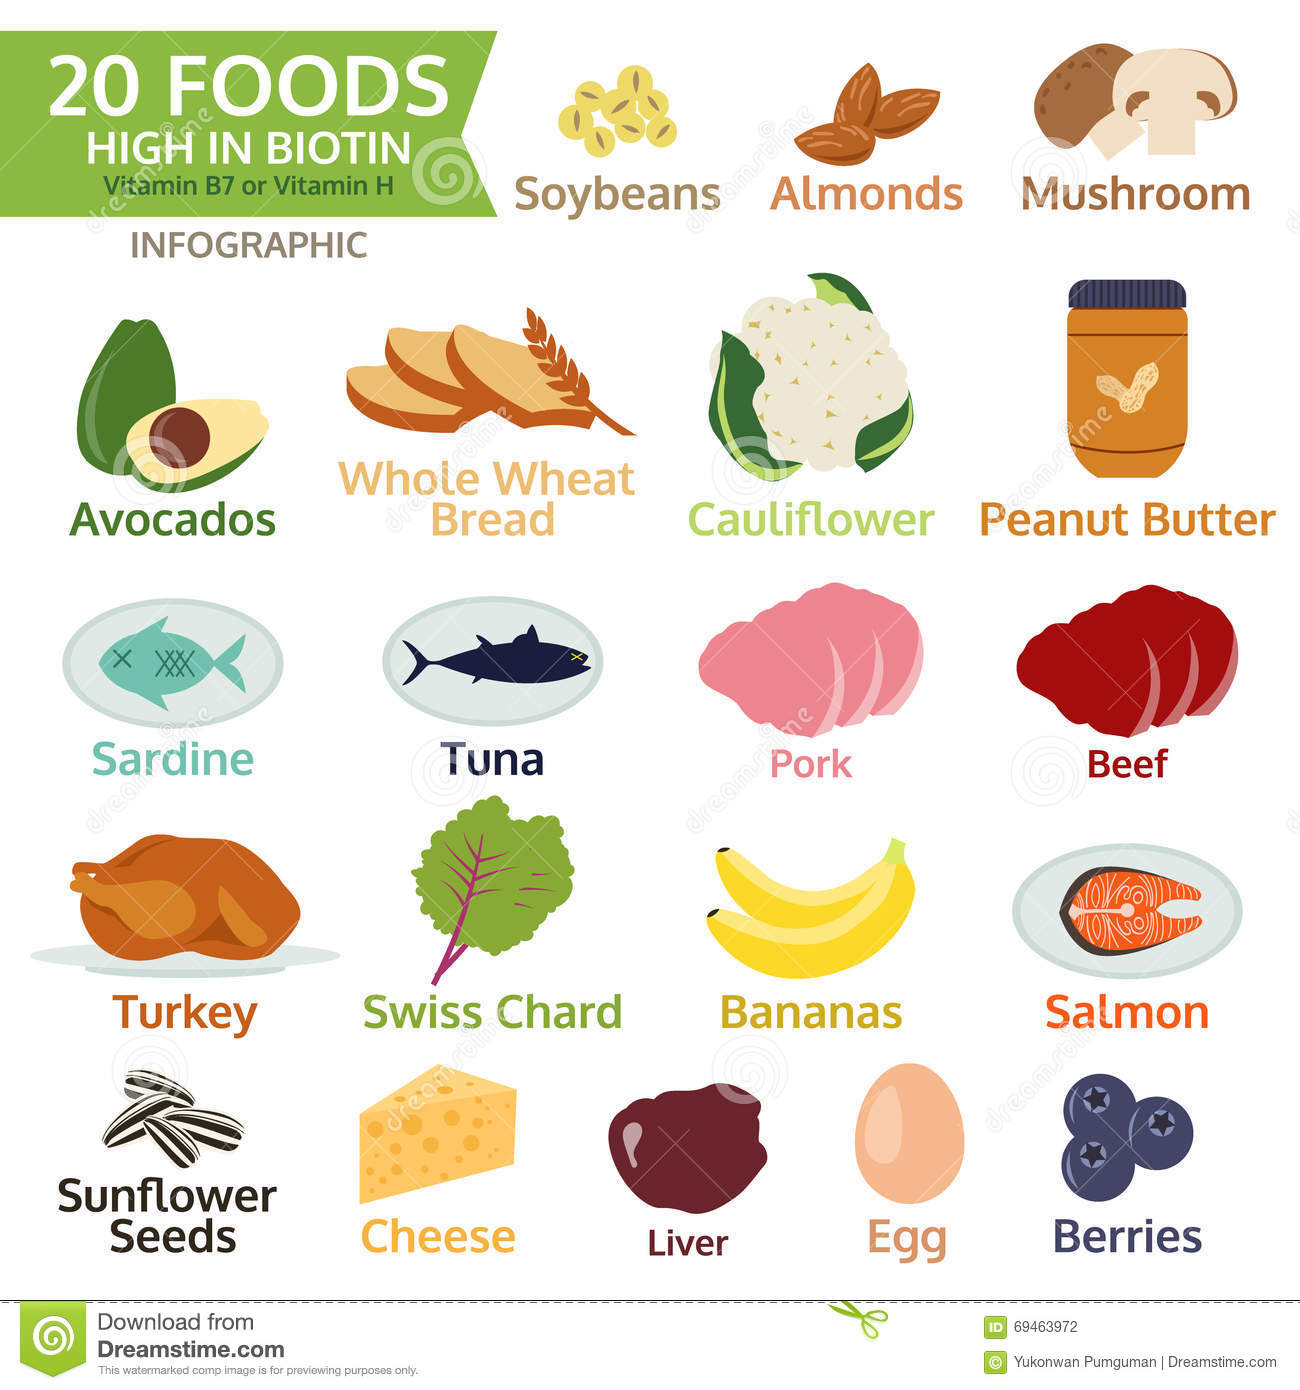 Vitamin B Rich Foods List In India